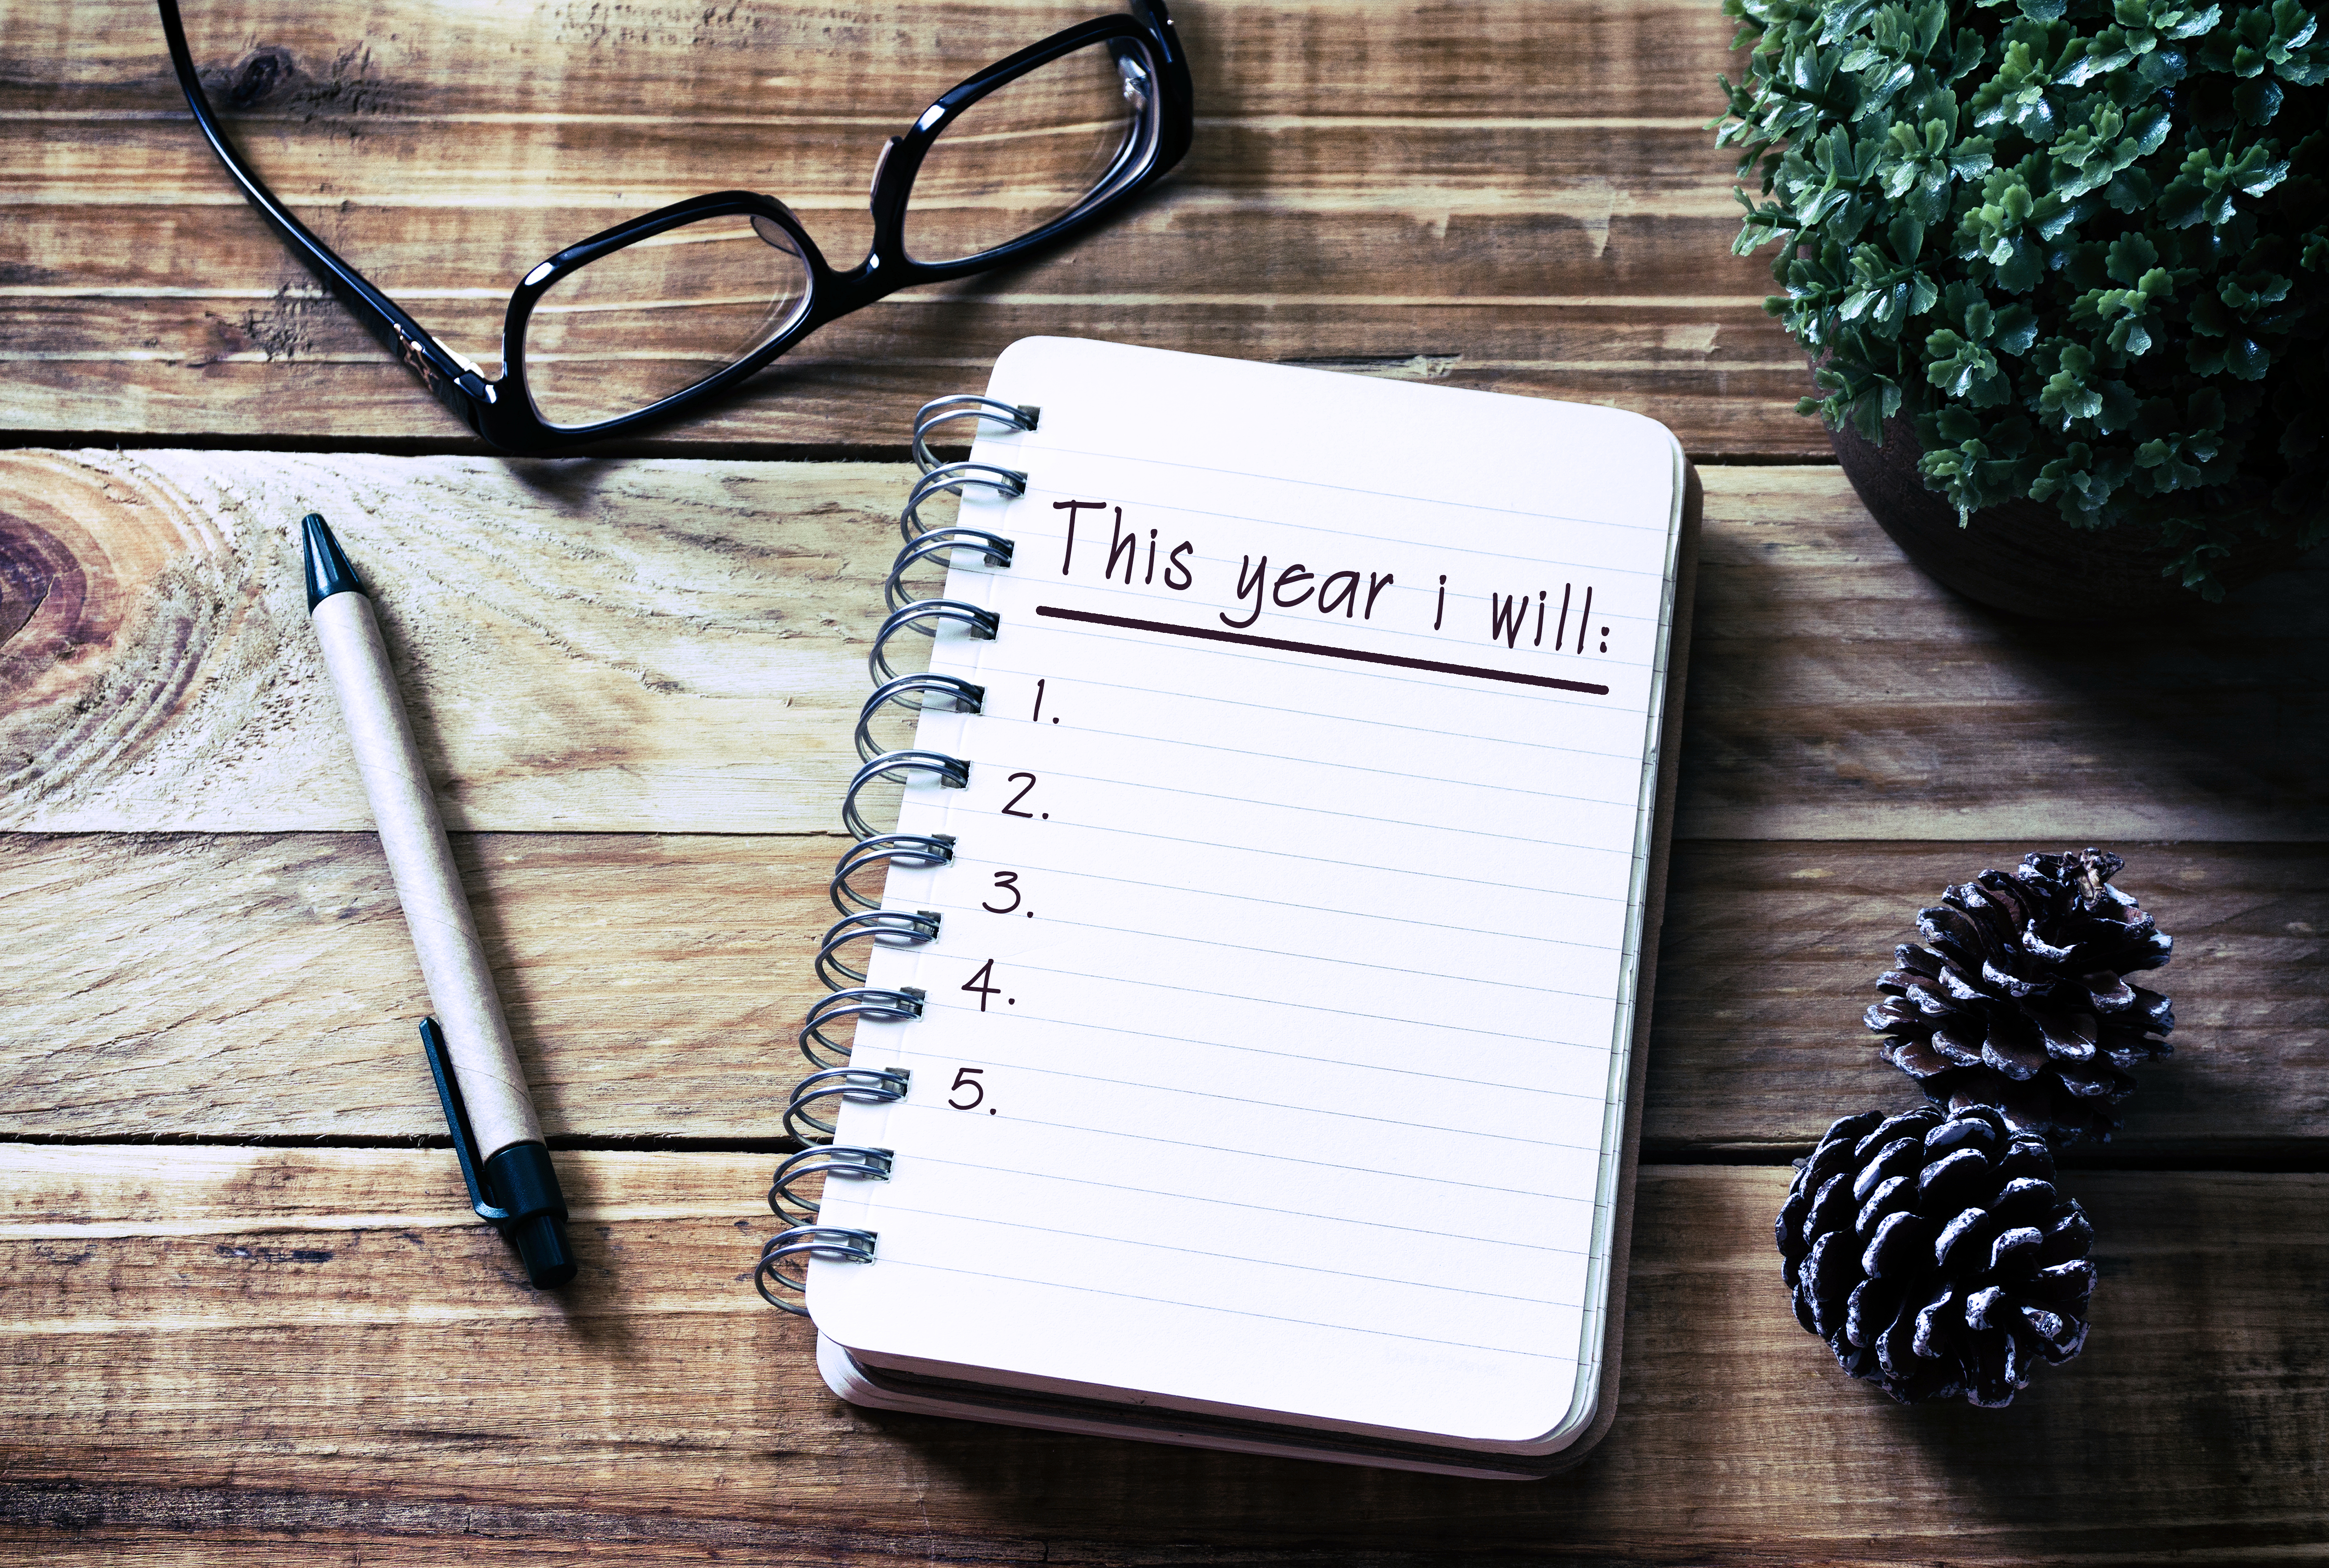 Notebook on wooden table with space to write goals